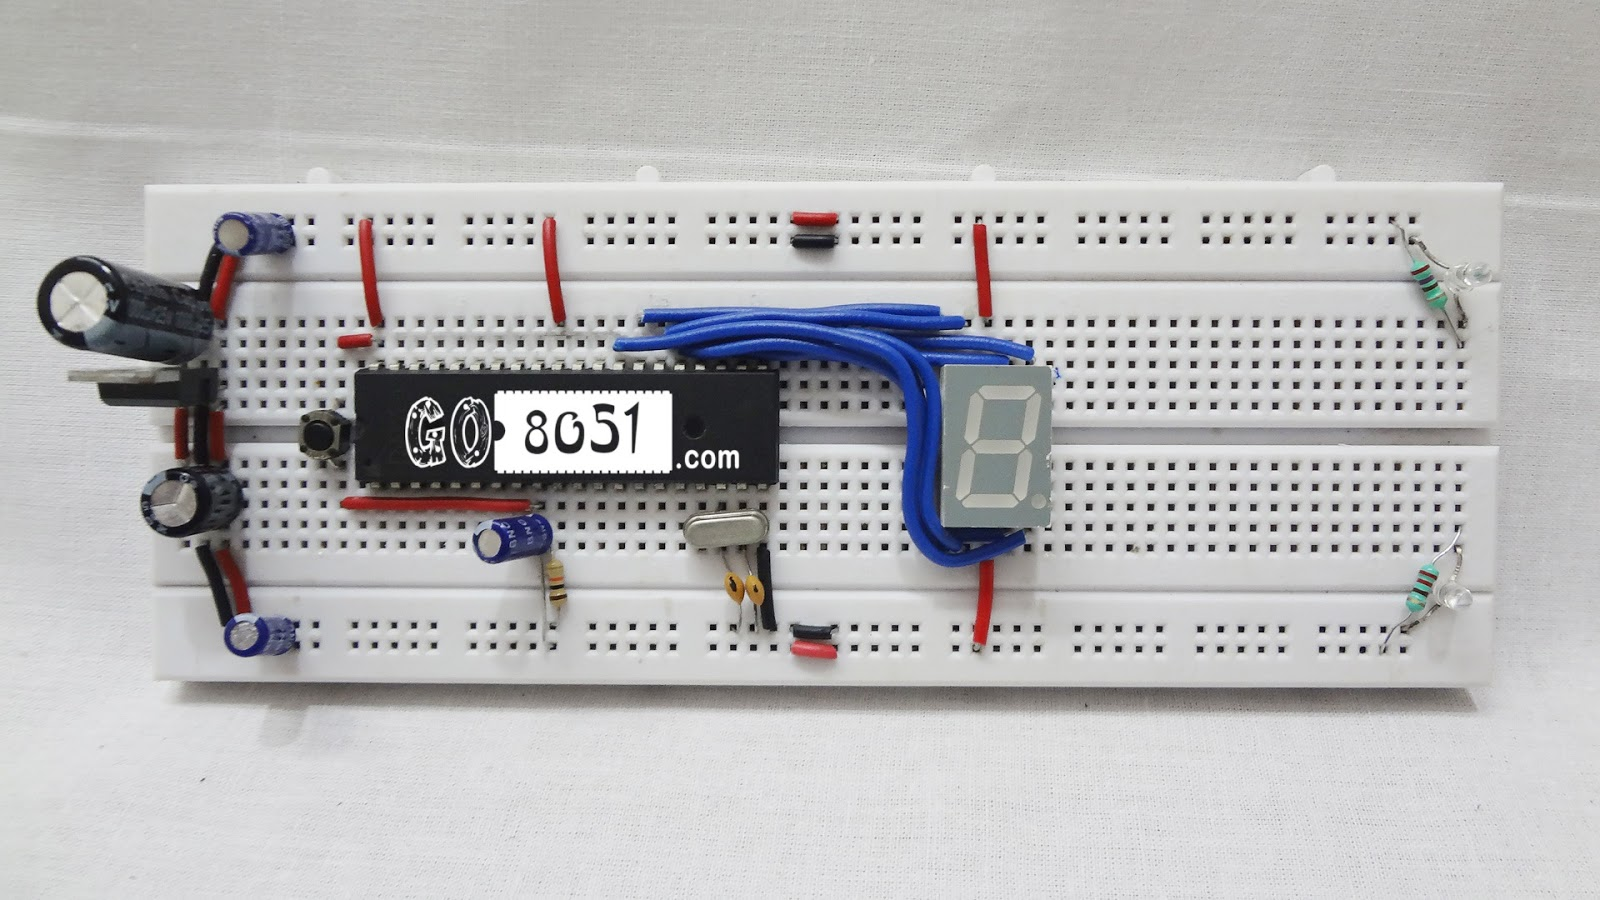 medium resolution of make sure you cross check the connection from the circuit diagram and below given bread board connection